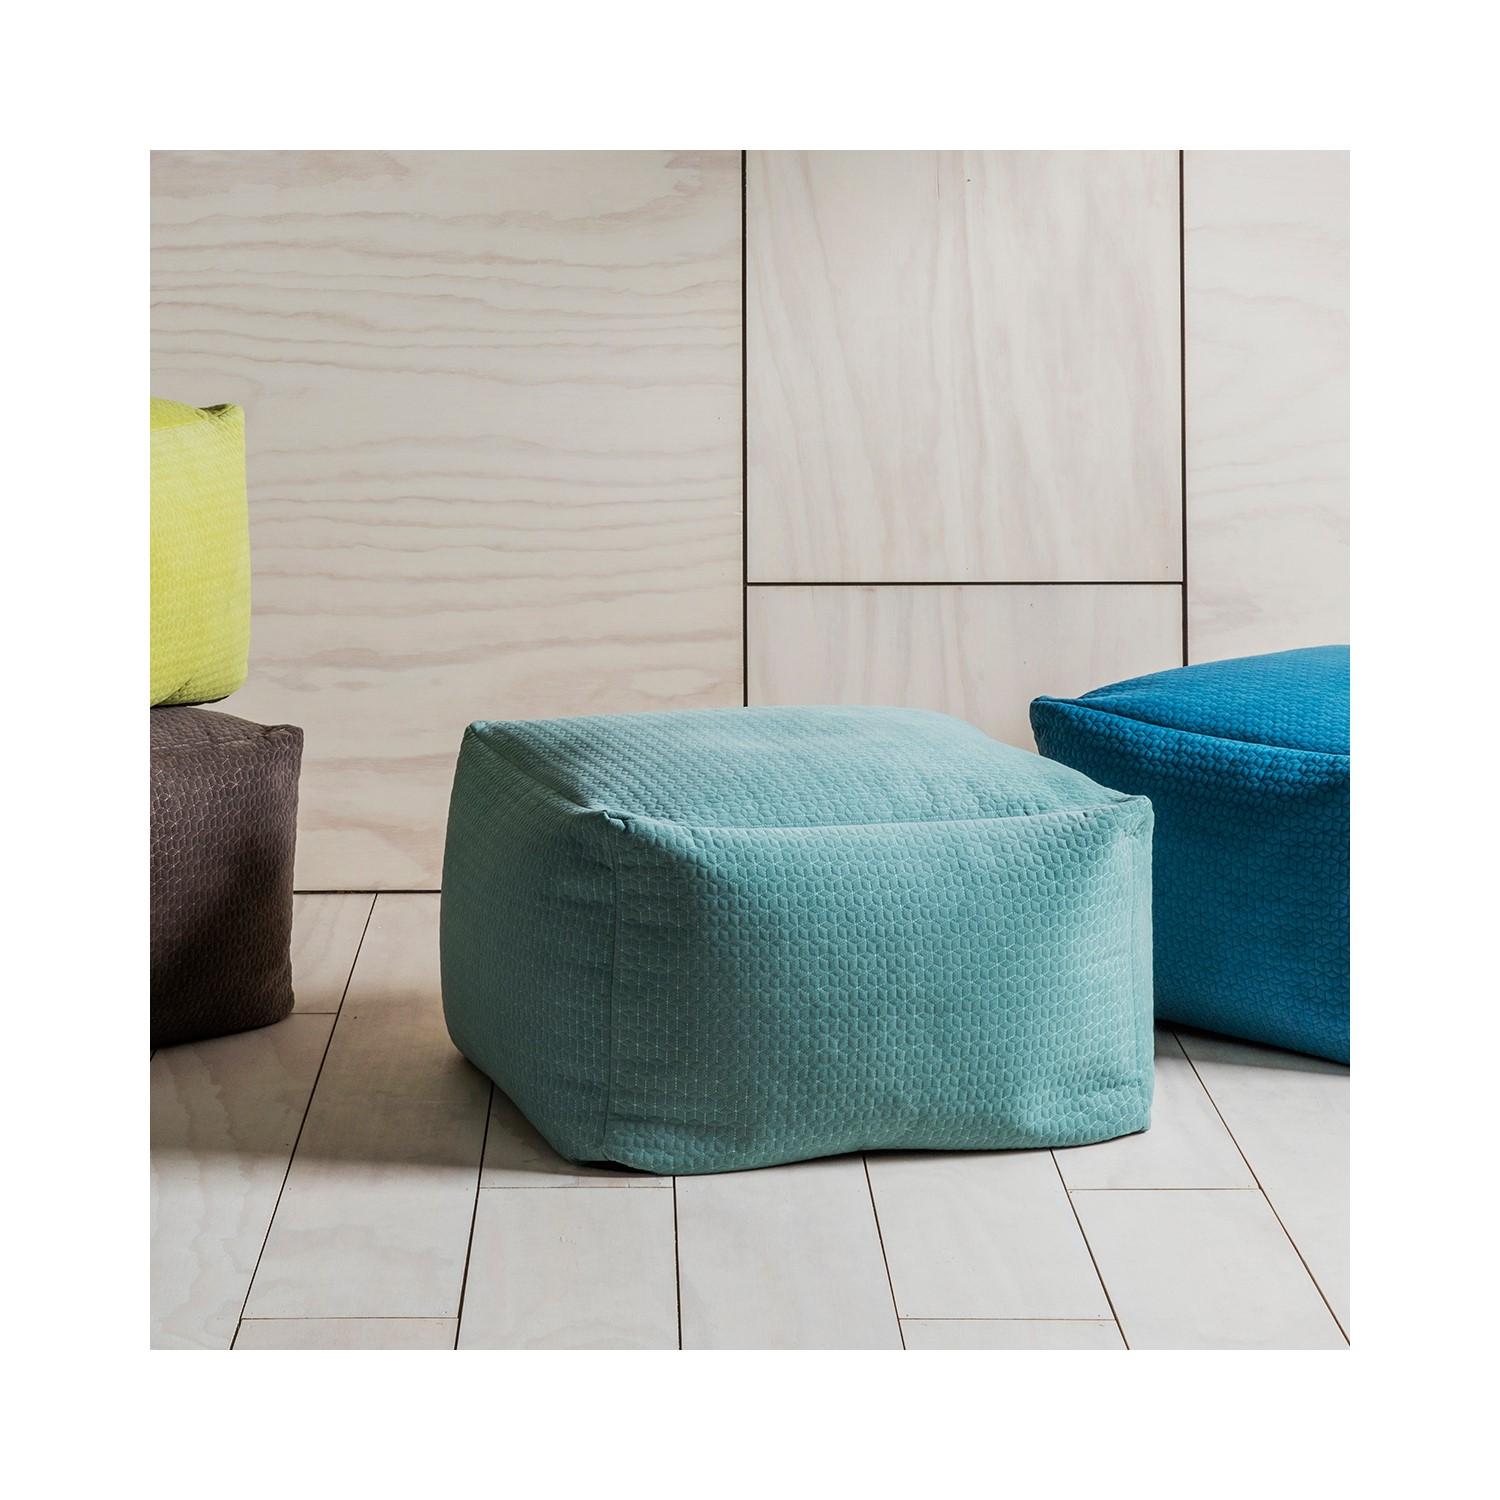 Magnificent Elder Square Bean Bag Chair In Duck Egg Blue Squirreltailoven Fun Painted Chair Ideas Images Squirreltailovenorg